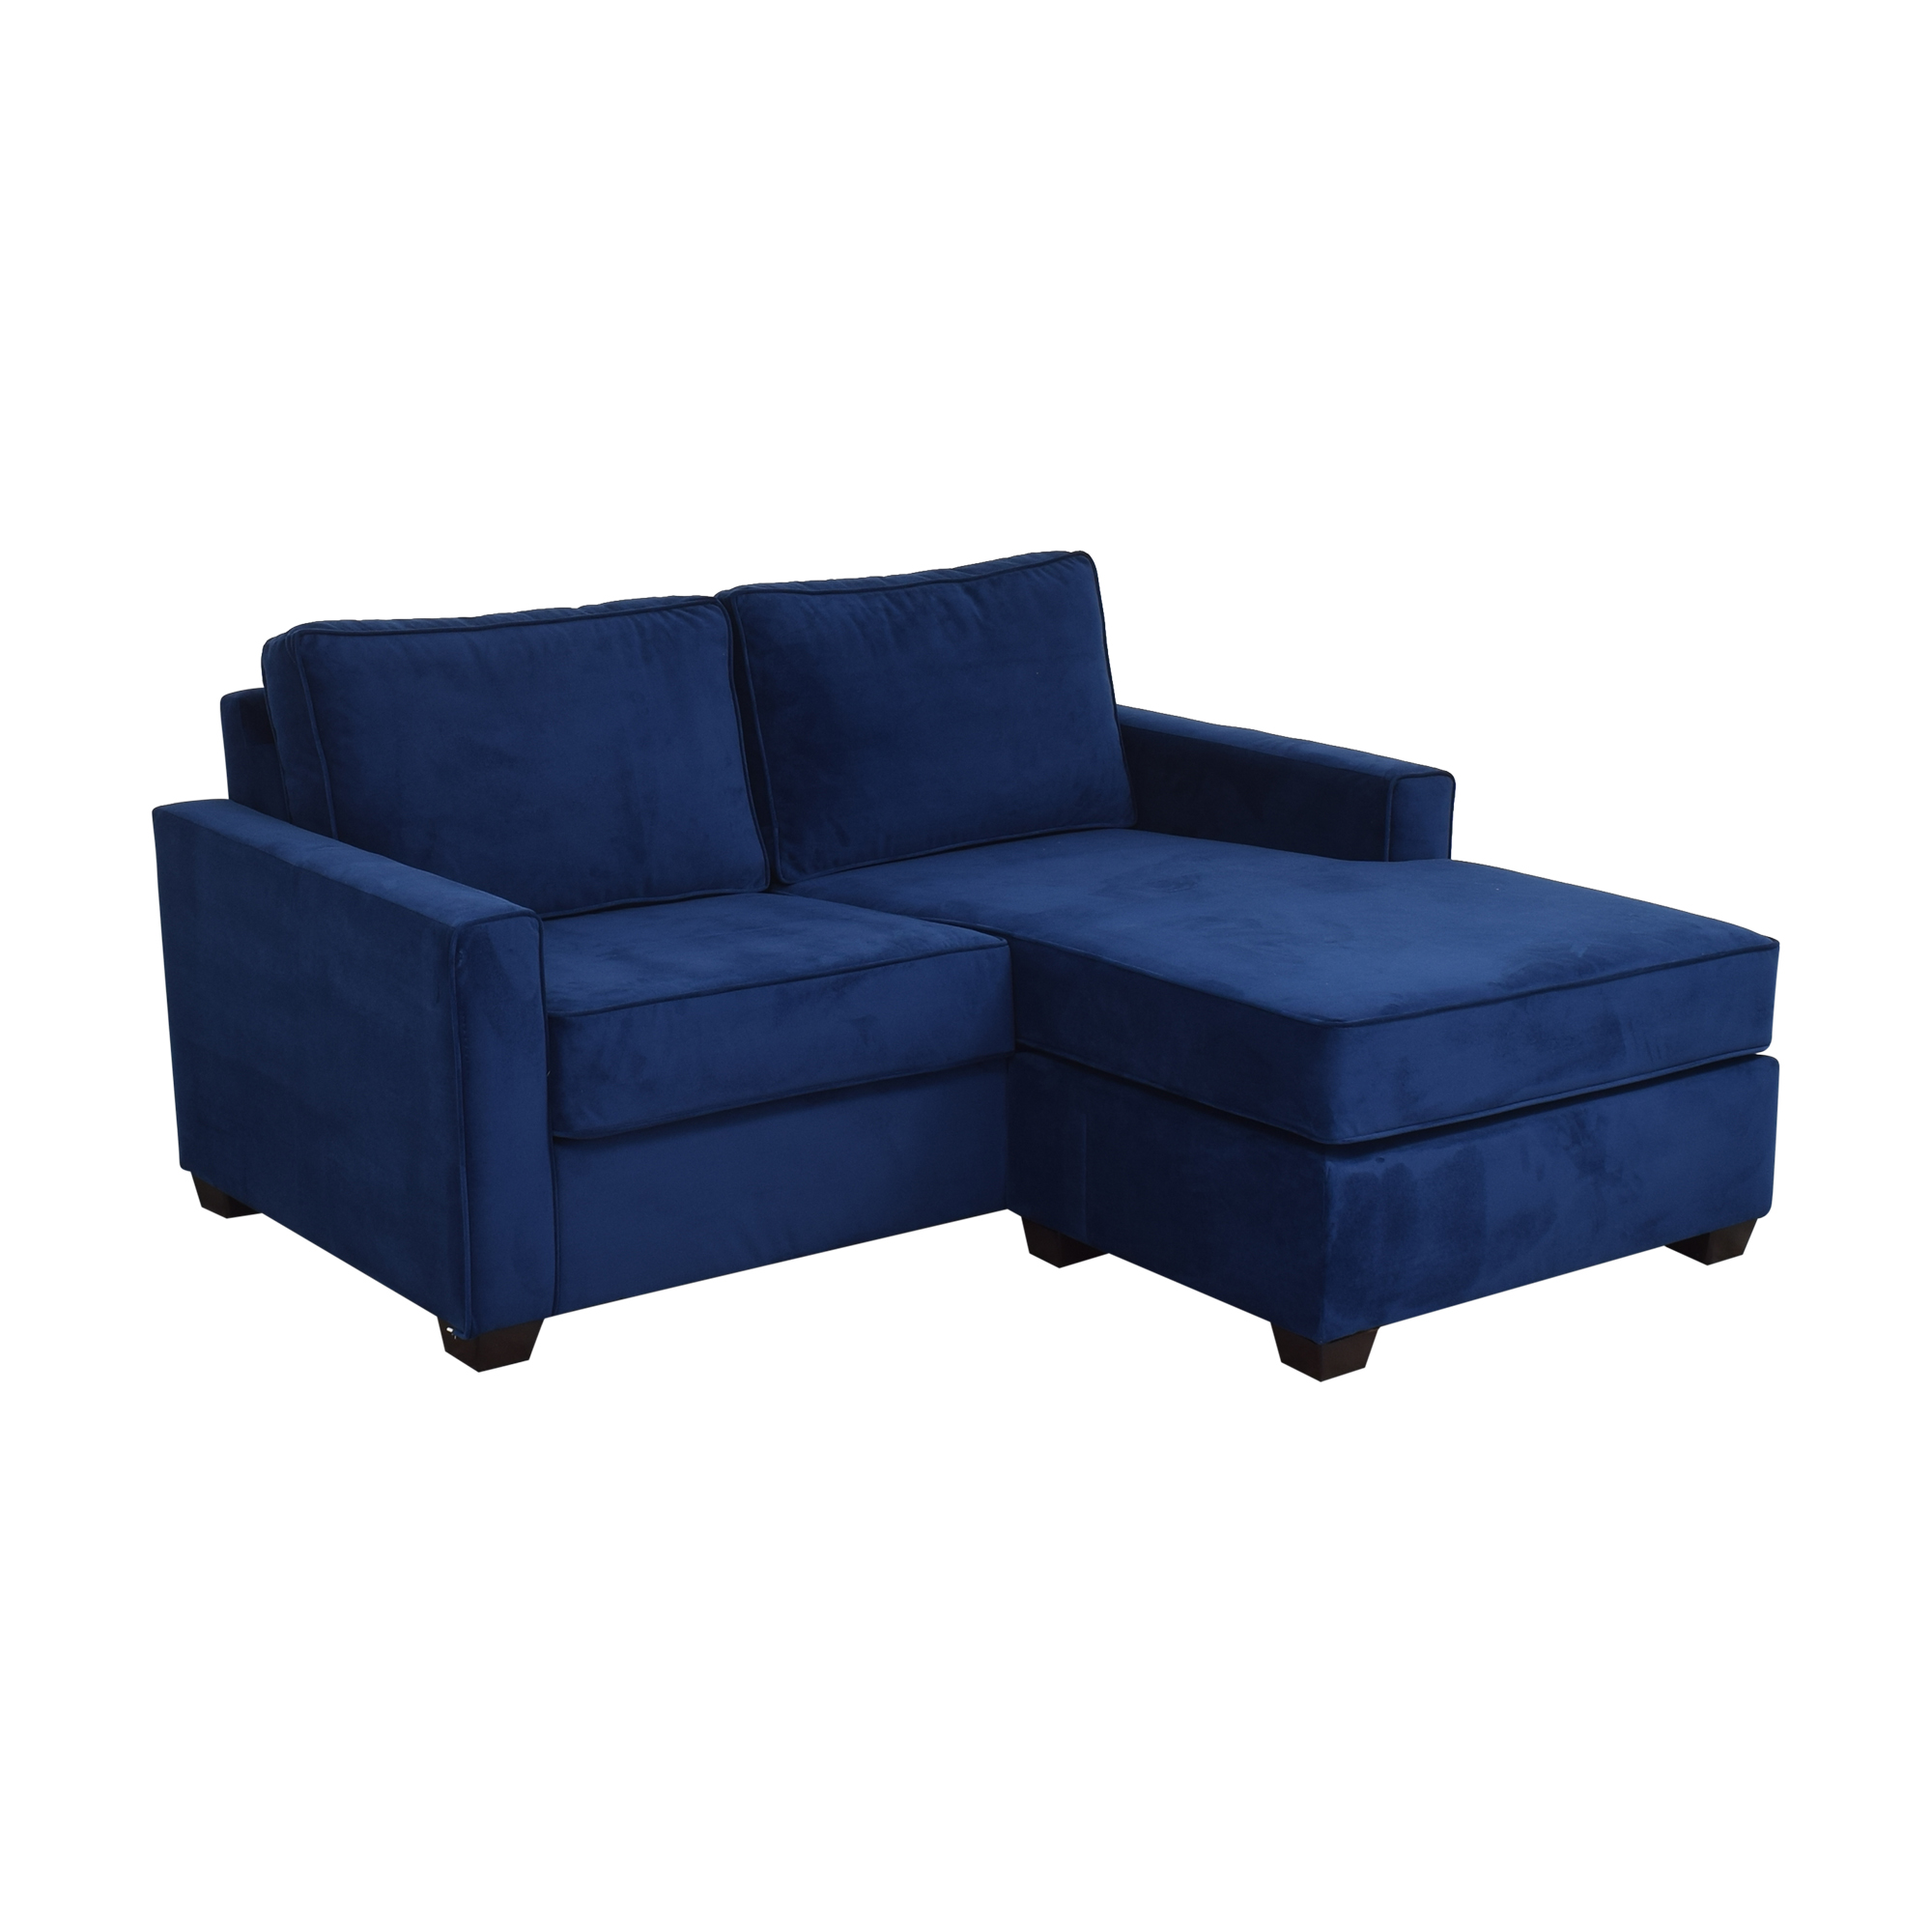 Pottery Barn Pottery Barn SoMa Fremont Square Arm Upholstered Sofa with Reversible Chaise Sectional